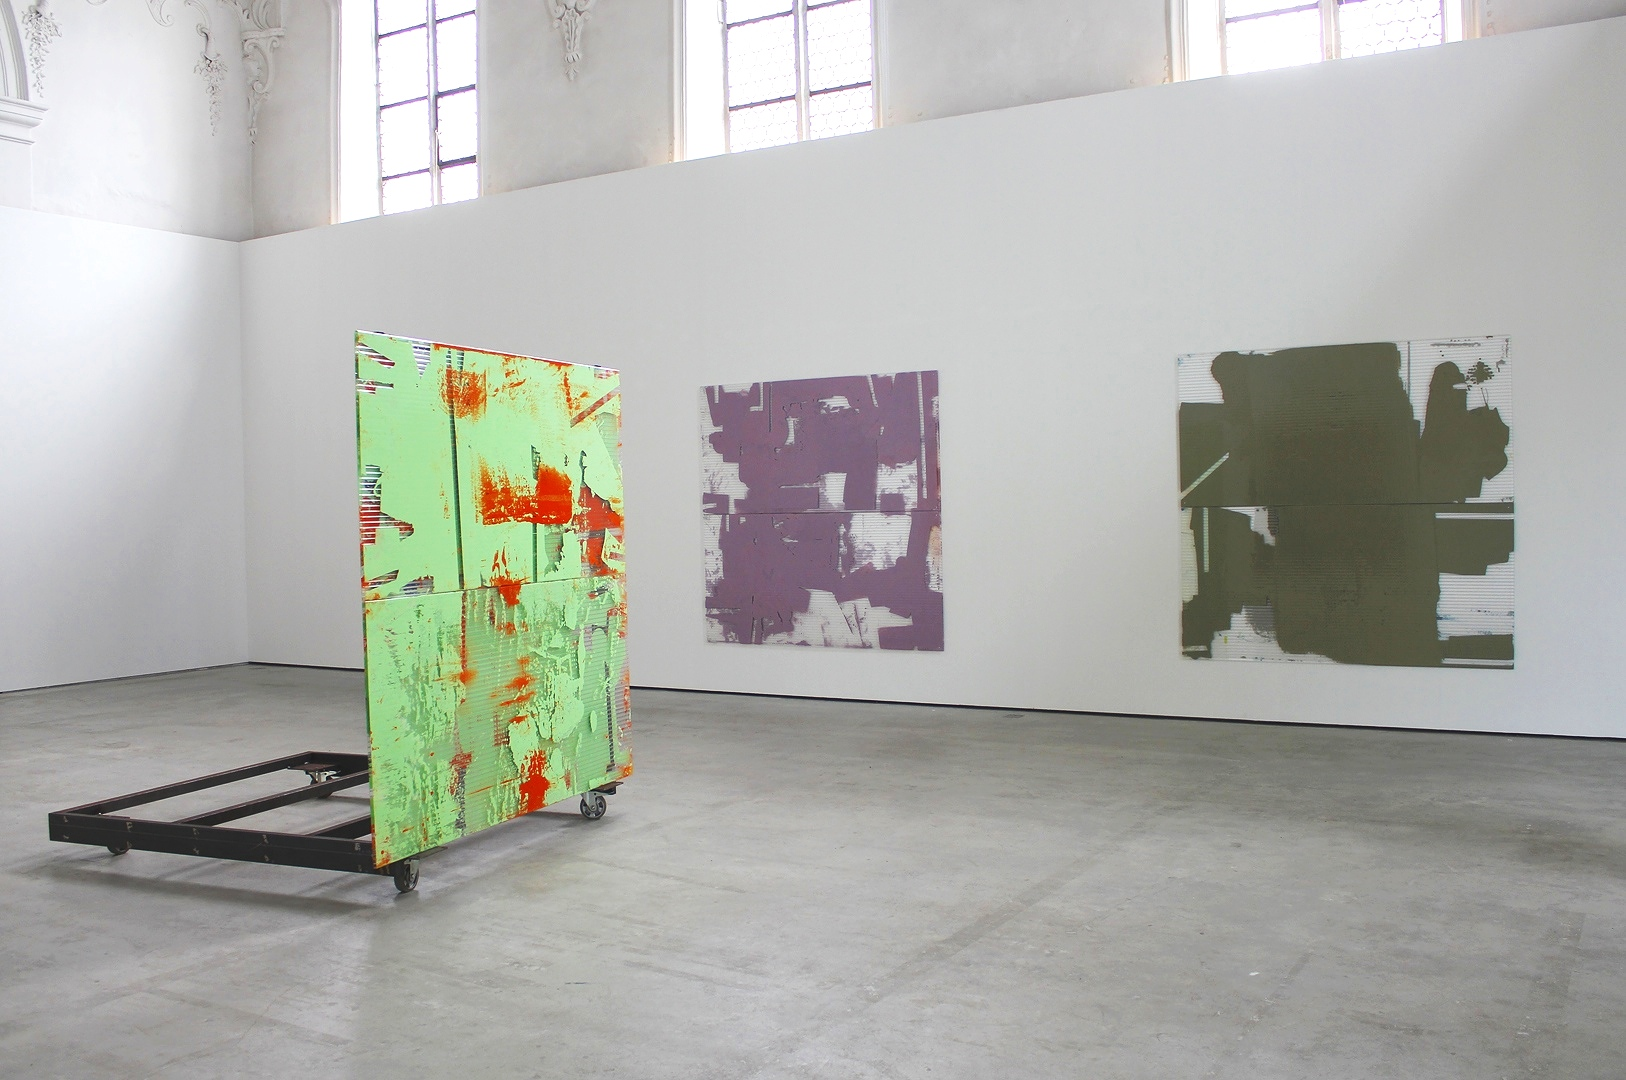 Installation view 2019